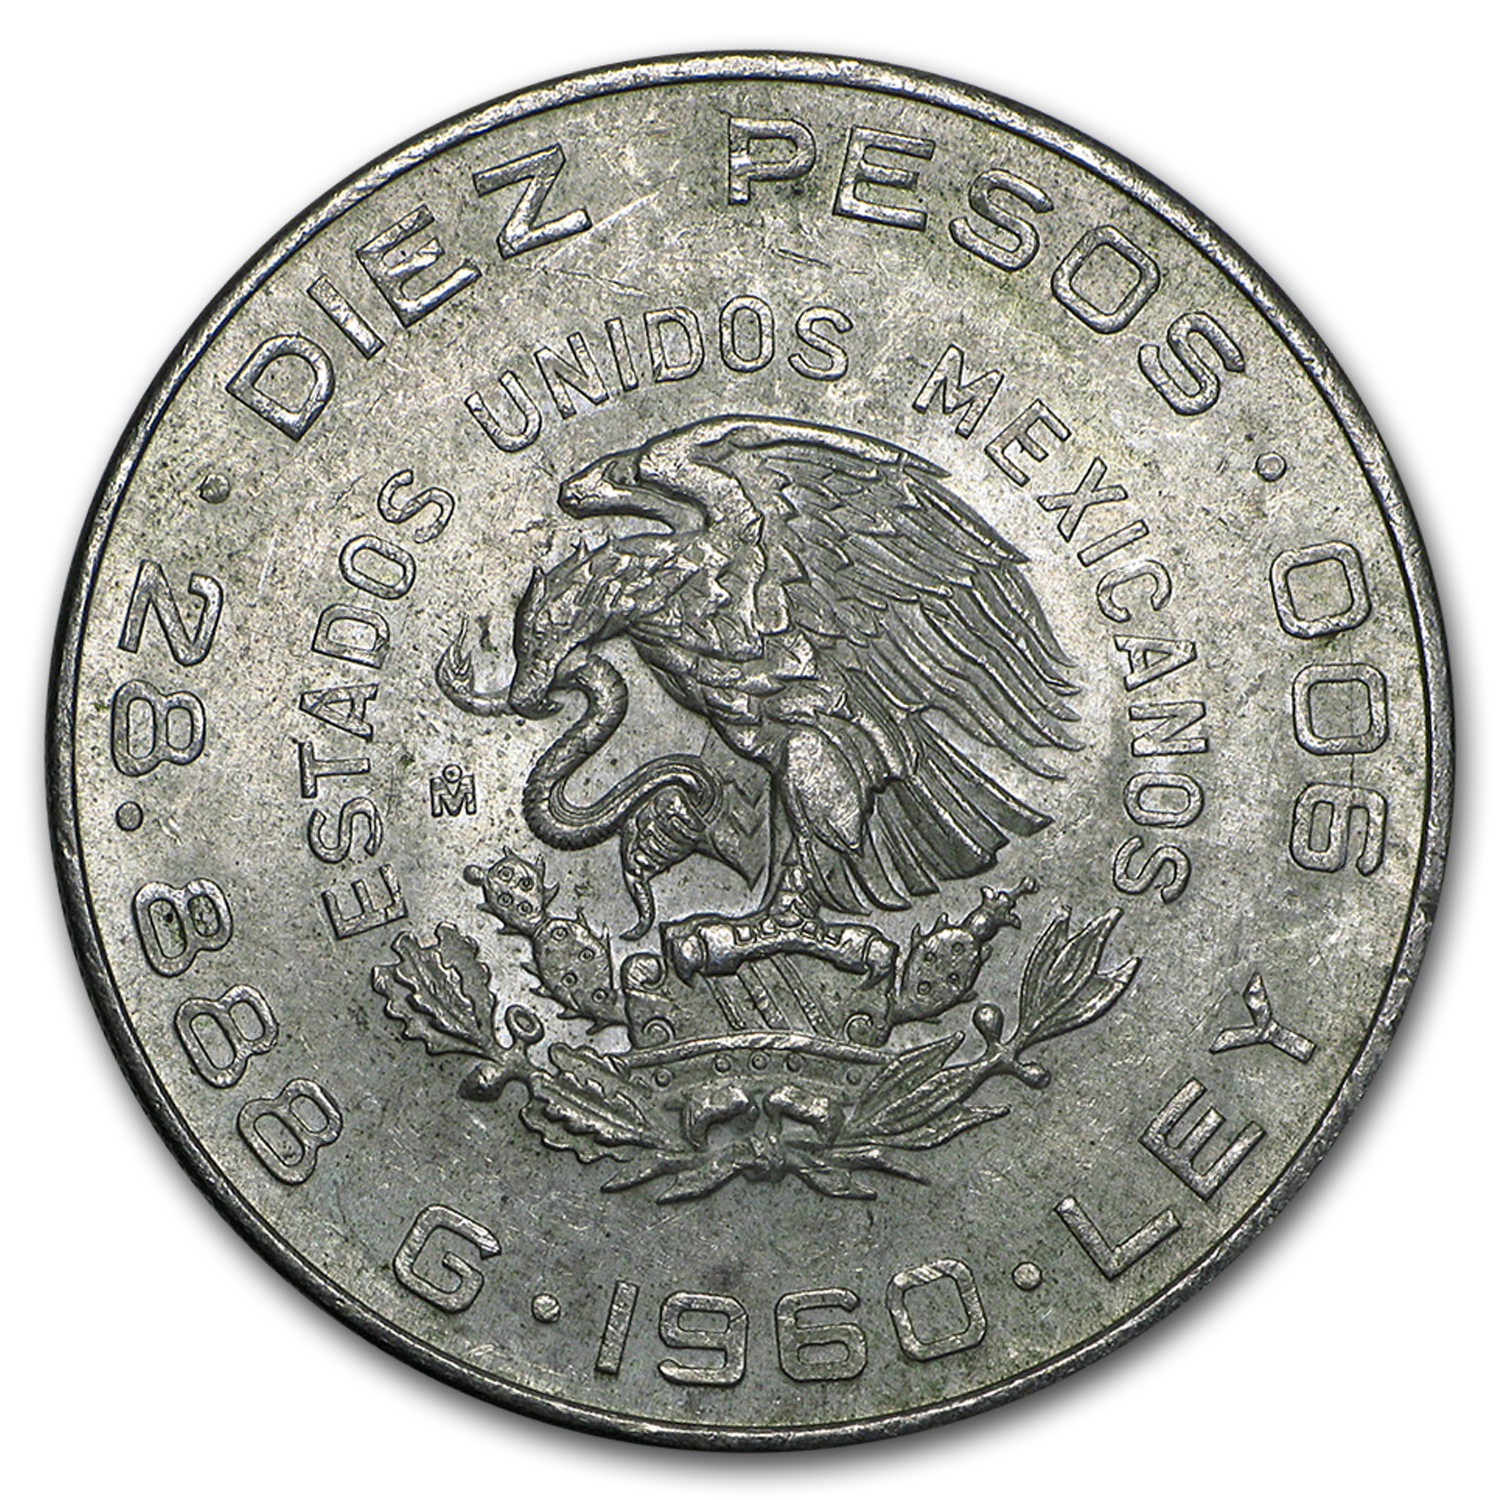 1960 Mexico Silver 10 Pesos 150th Ann XF-AU (ASW .8357 oz)